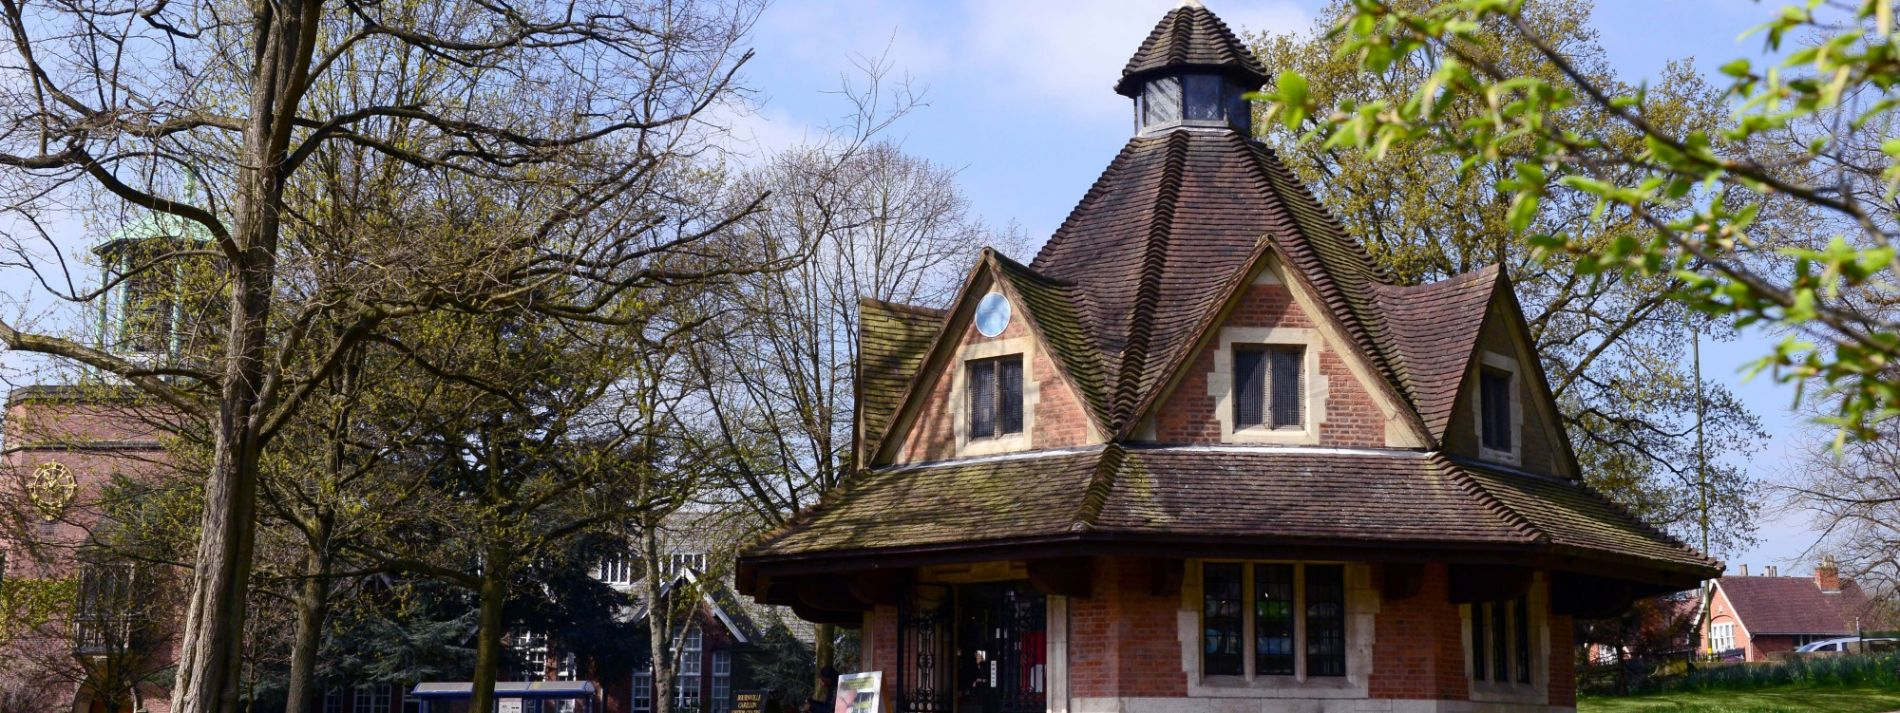 Exploring Bournville village